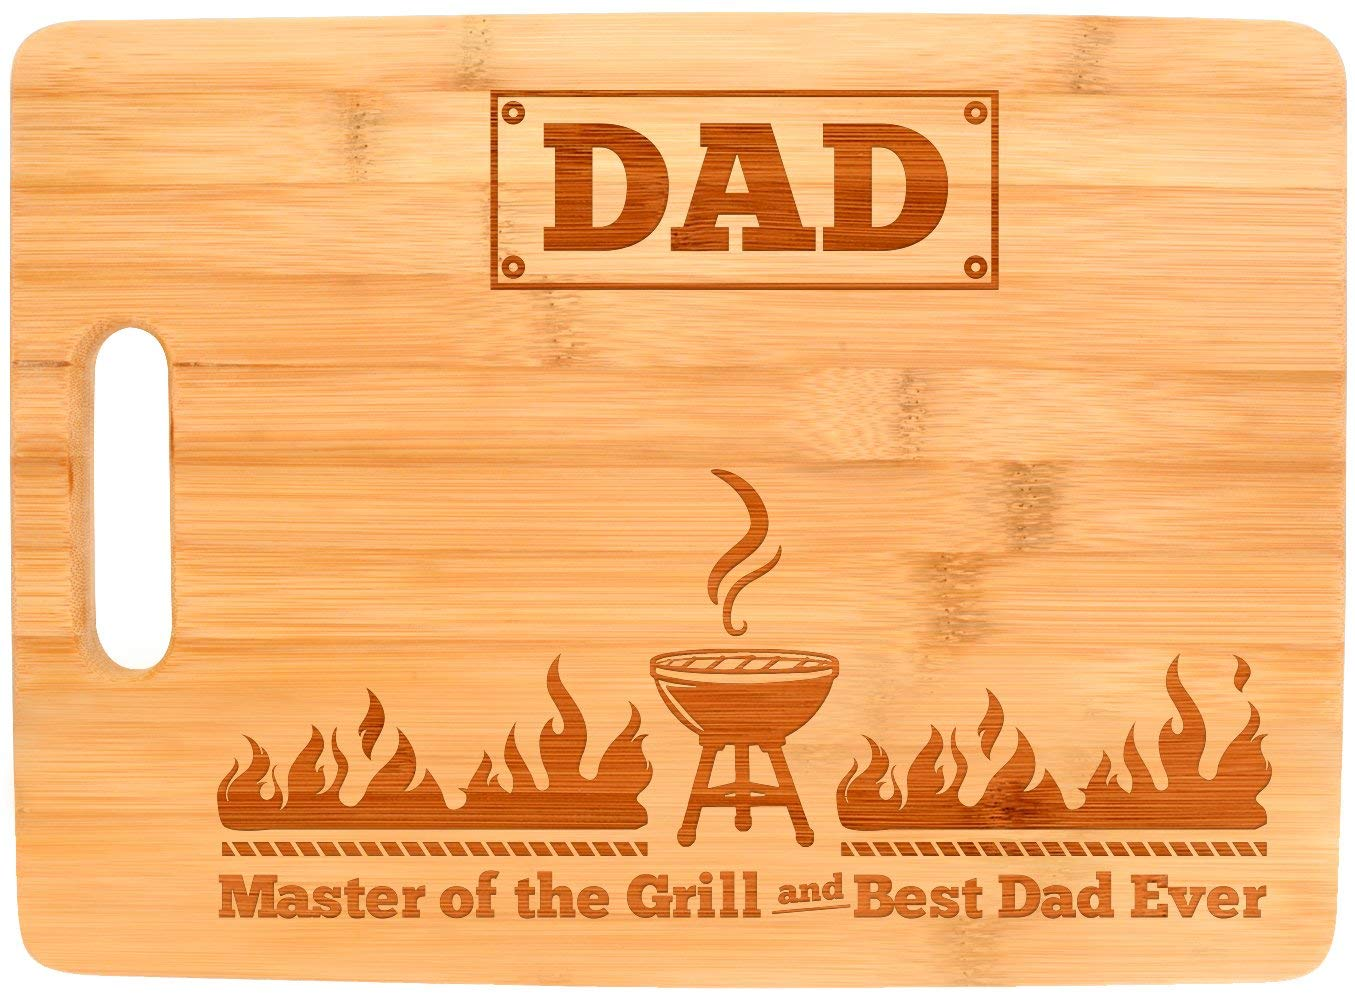 Laser Engraved Cutting Board Master of the Grill and Best Dad Ever Father's Day Gifts Birthday Gifts for Dad Personalized Cutting Board Gift Rectangle Bamboo Cutting Board